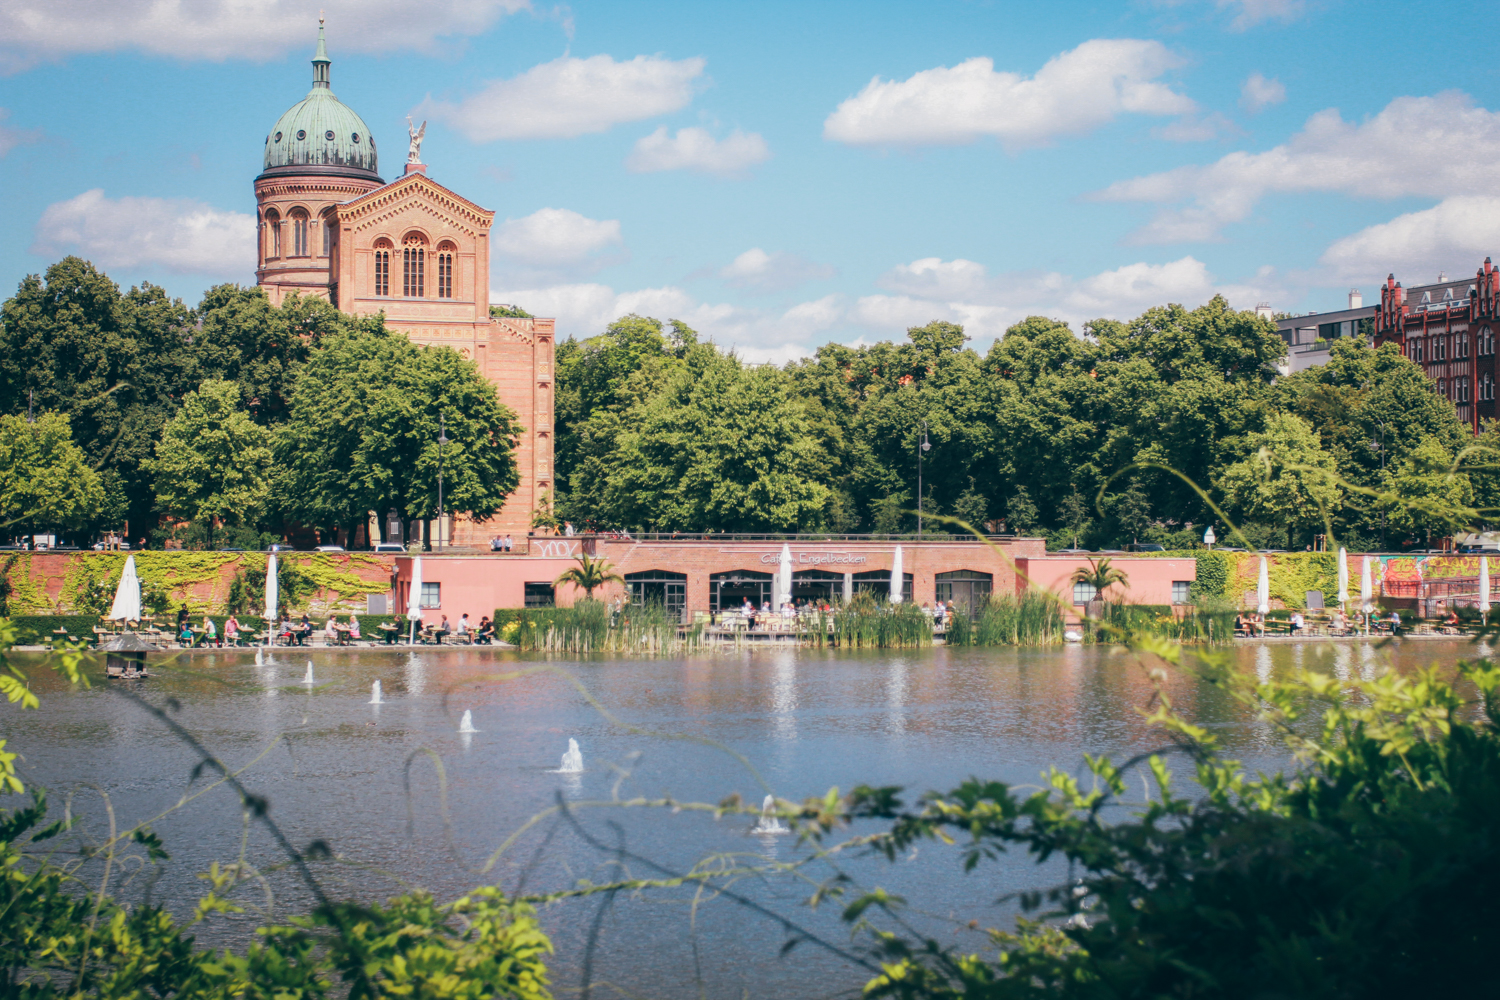 Restaurant Mit Terrasse Berlin 5 Charming Cafes Restaurants In Berlin By The Water